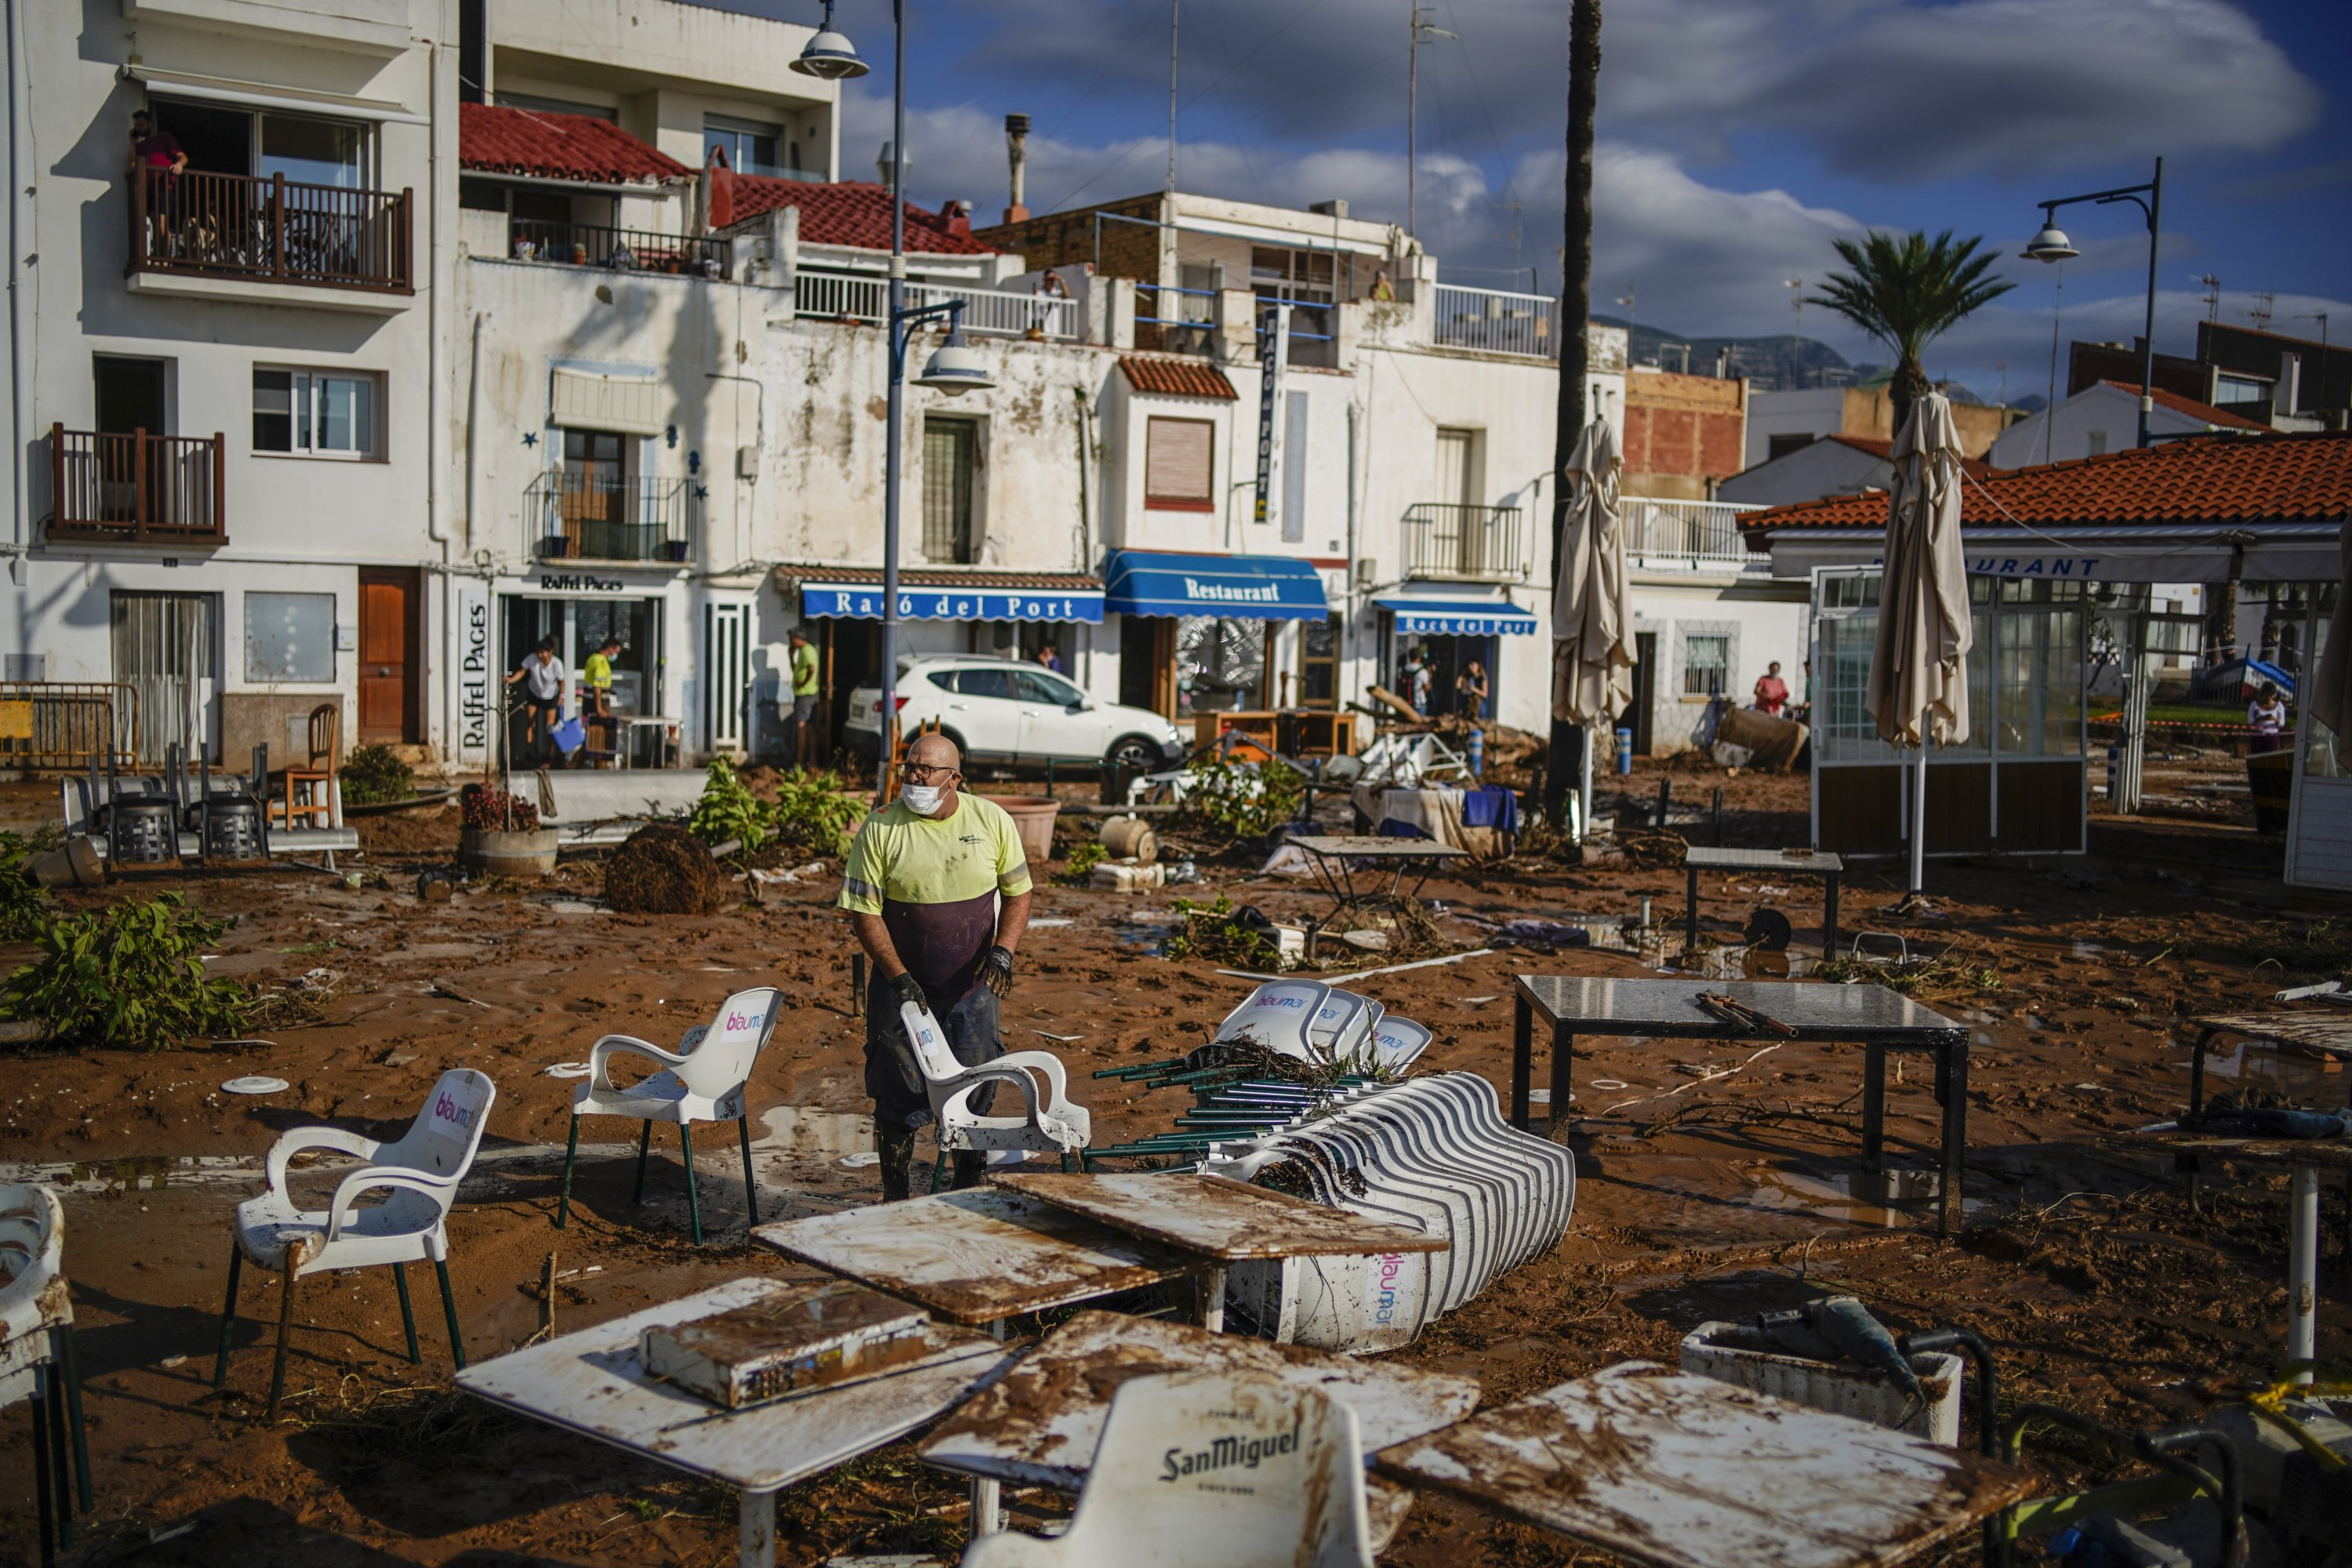 A municipality worker cleans up after flooding in a seaside town of Alcanar, in northeastern Spain, Sept. 2, 2021. (AP Photo)